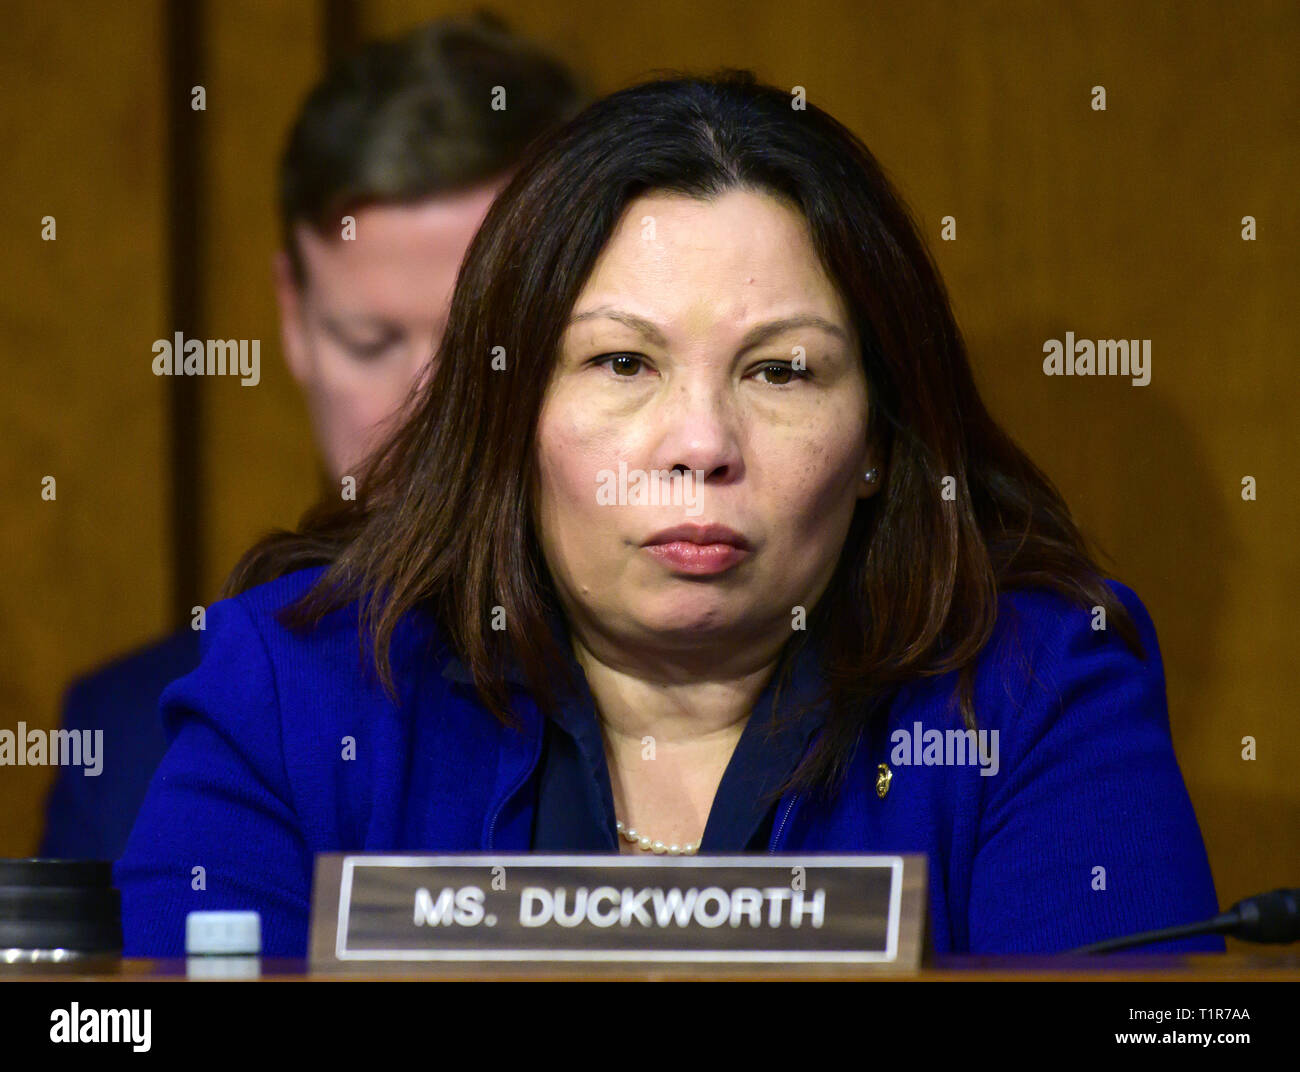 "Washington, District of Columbia, USA. 27th Mar, 2019. United States Senator Tammy Duckworth (Democrat of Illinois) listens to testimony before the US Senate Committee on Commerce, Science, and Transportation Subcommittee on Aviation and Space, during a hearing titled, ""The State of Airline Safety: Federal Oversight of Commercial Aviation'' to examine problems with the Boeing 737 Max aircraft highlighted by the two recent fatal accidents Credit: Ron Sachs/CNP/ZUMA Wire/Alamy Live News Stock Photo"